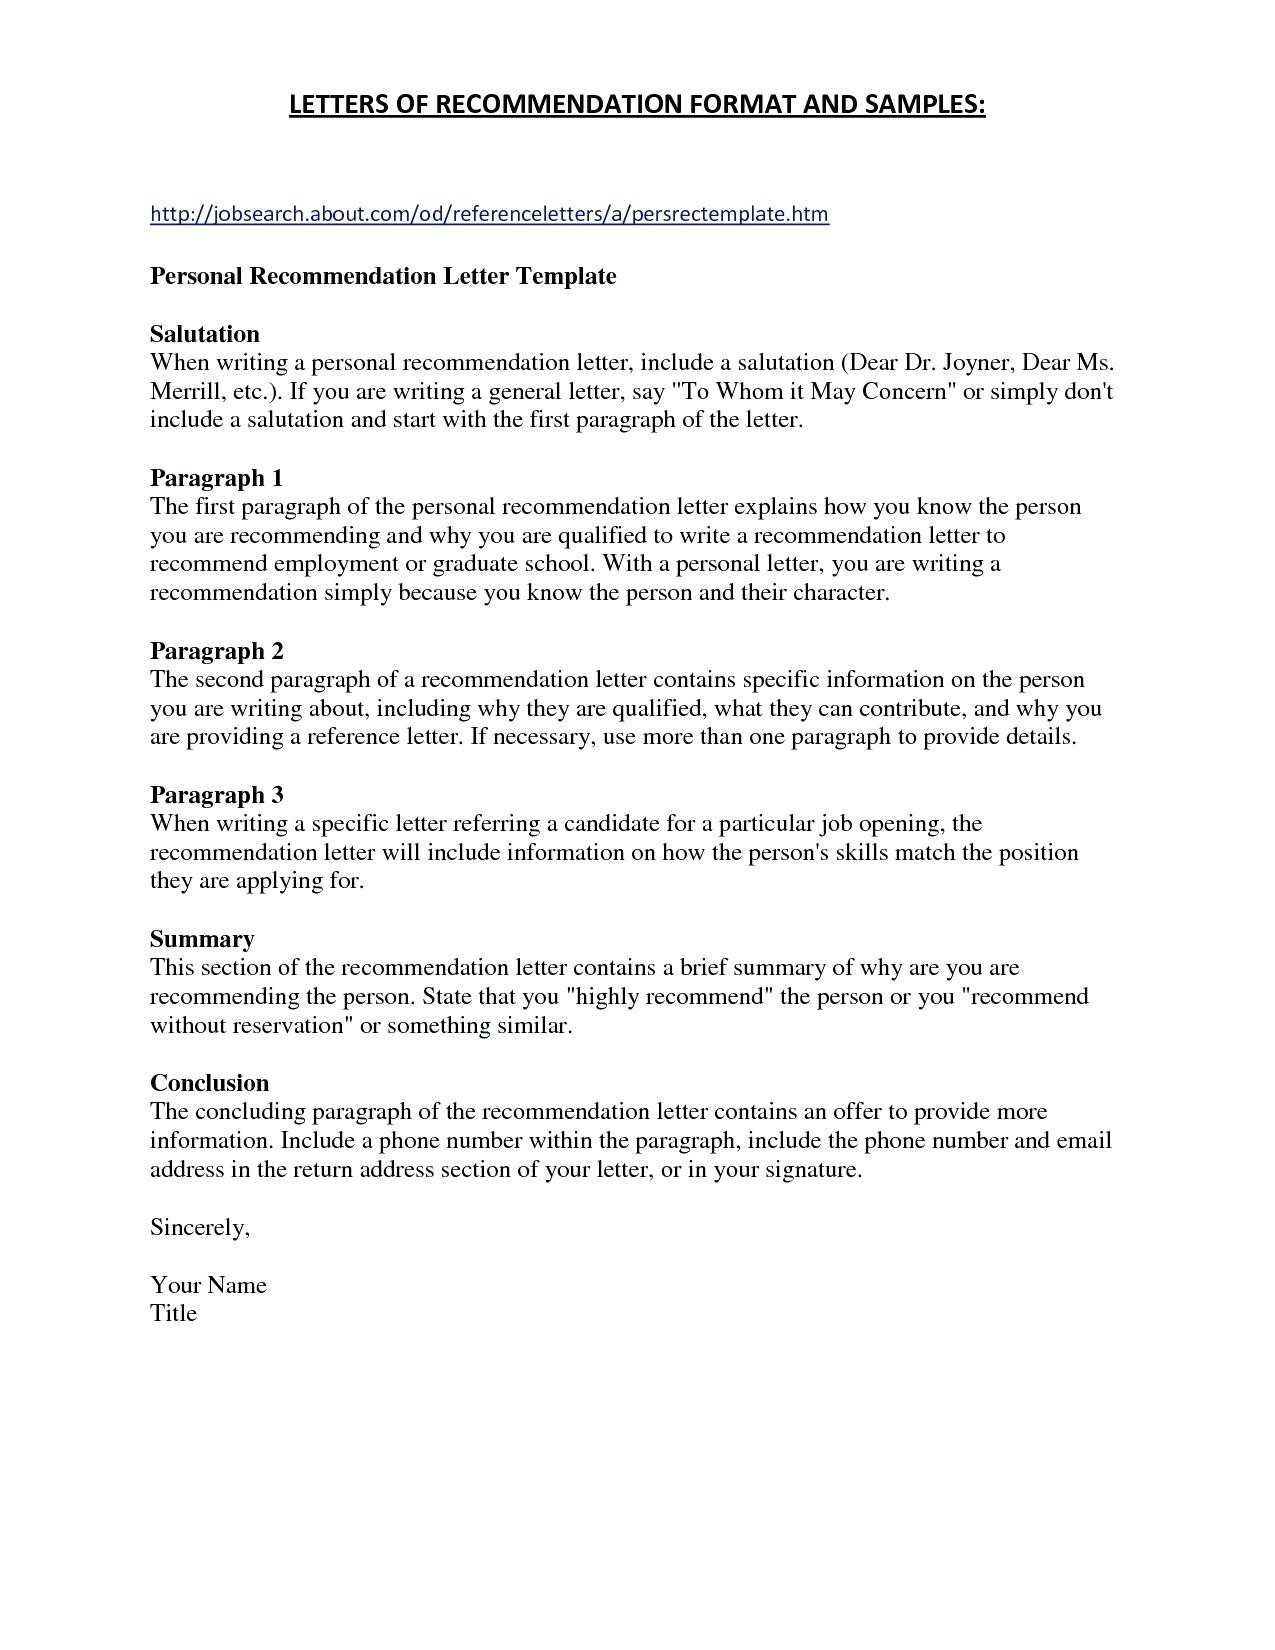 disclosure letter template example-Non Disclosure Statement Template with Business Disclosure Letter Sample Awesome Non Disclosure Statement 5-d